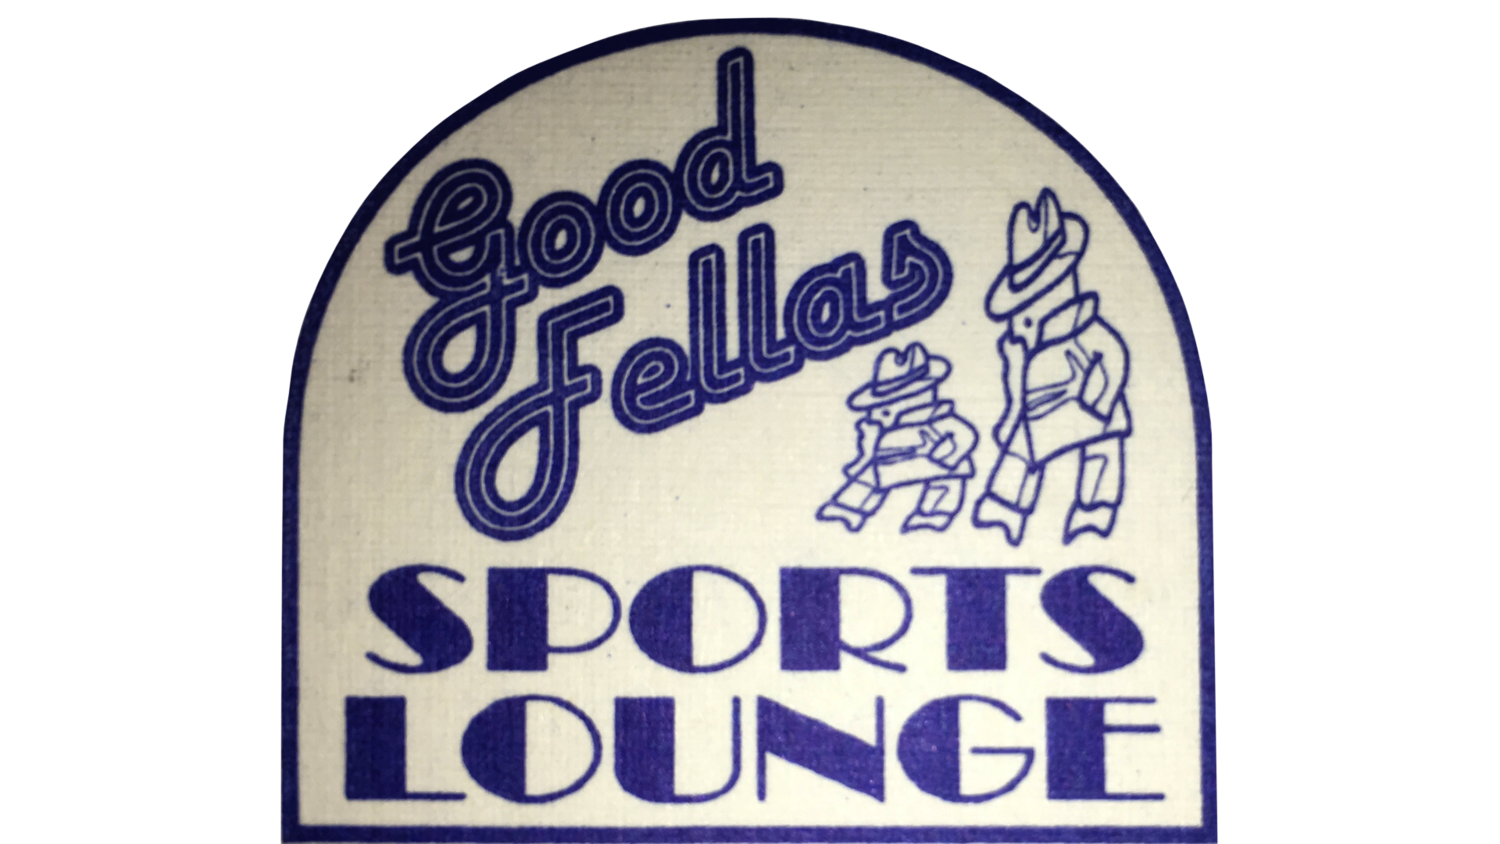 Good Fellas Sports Lounge